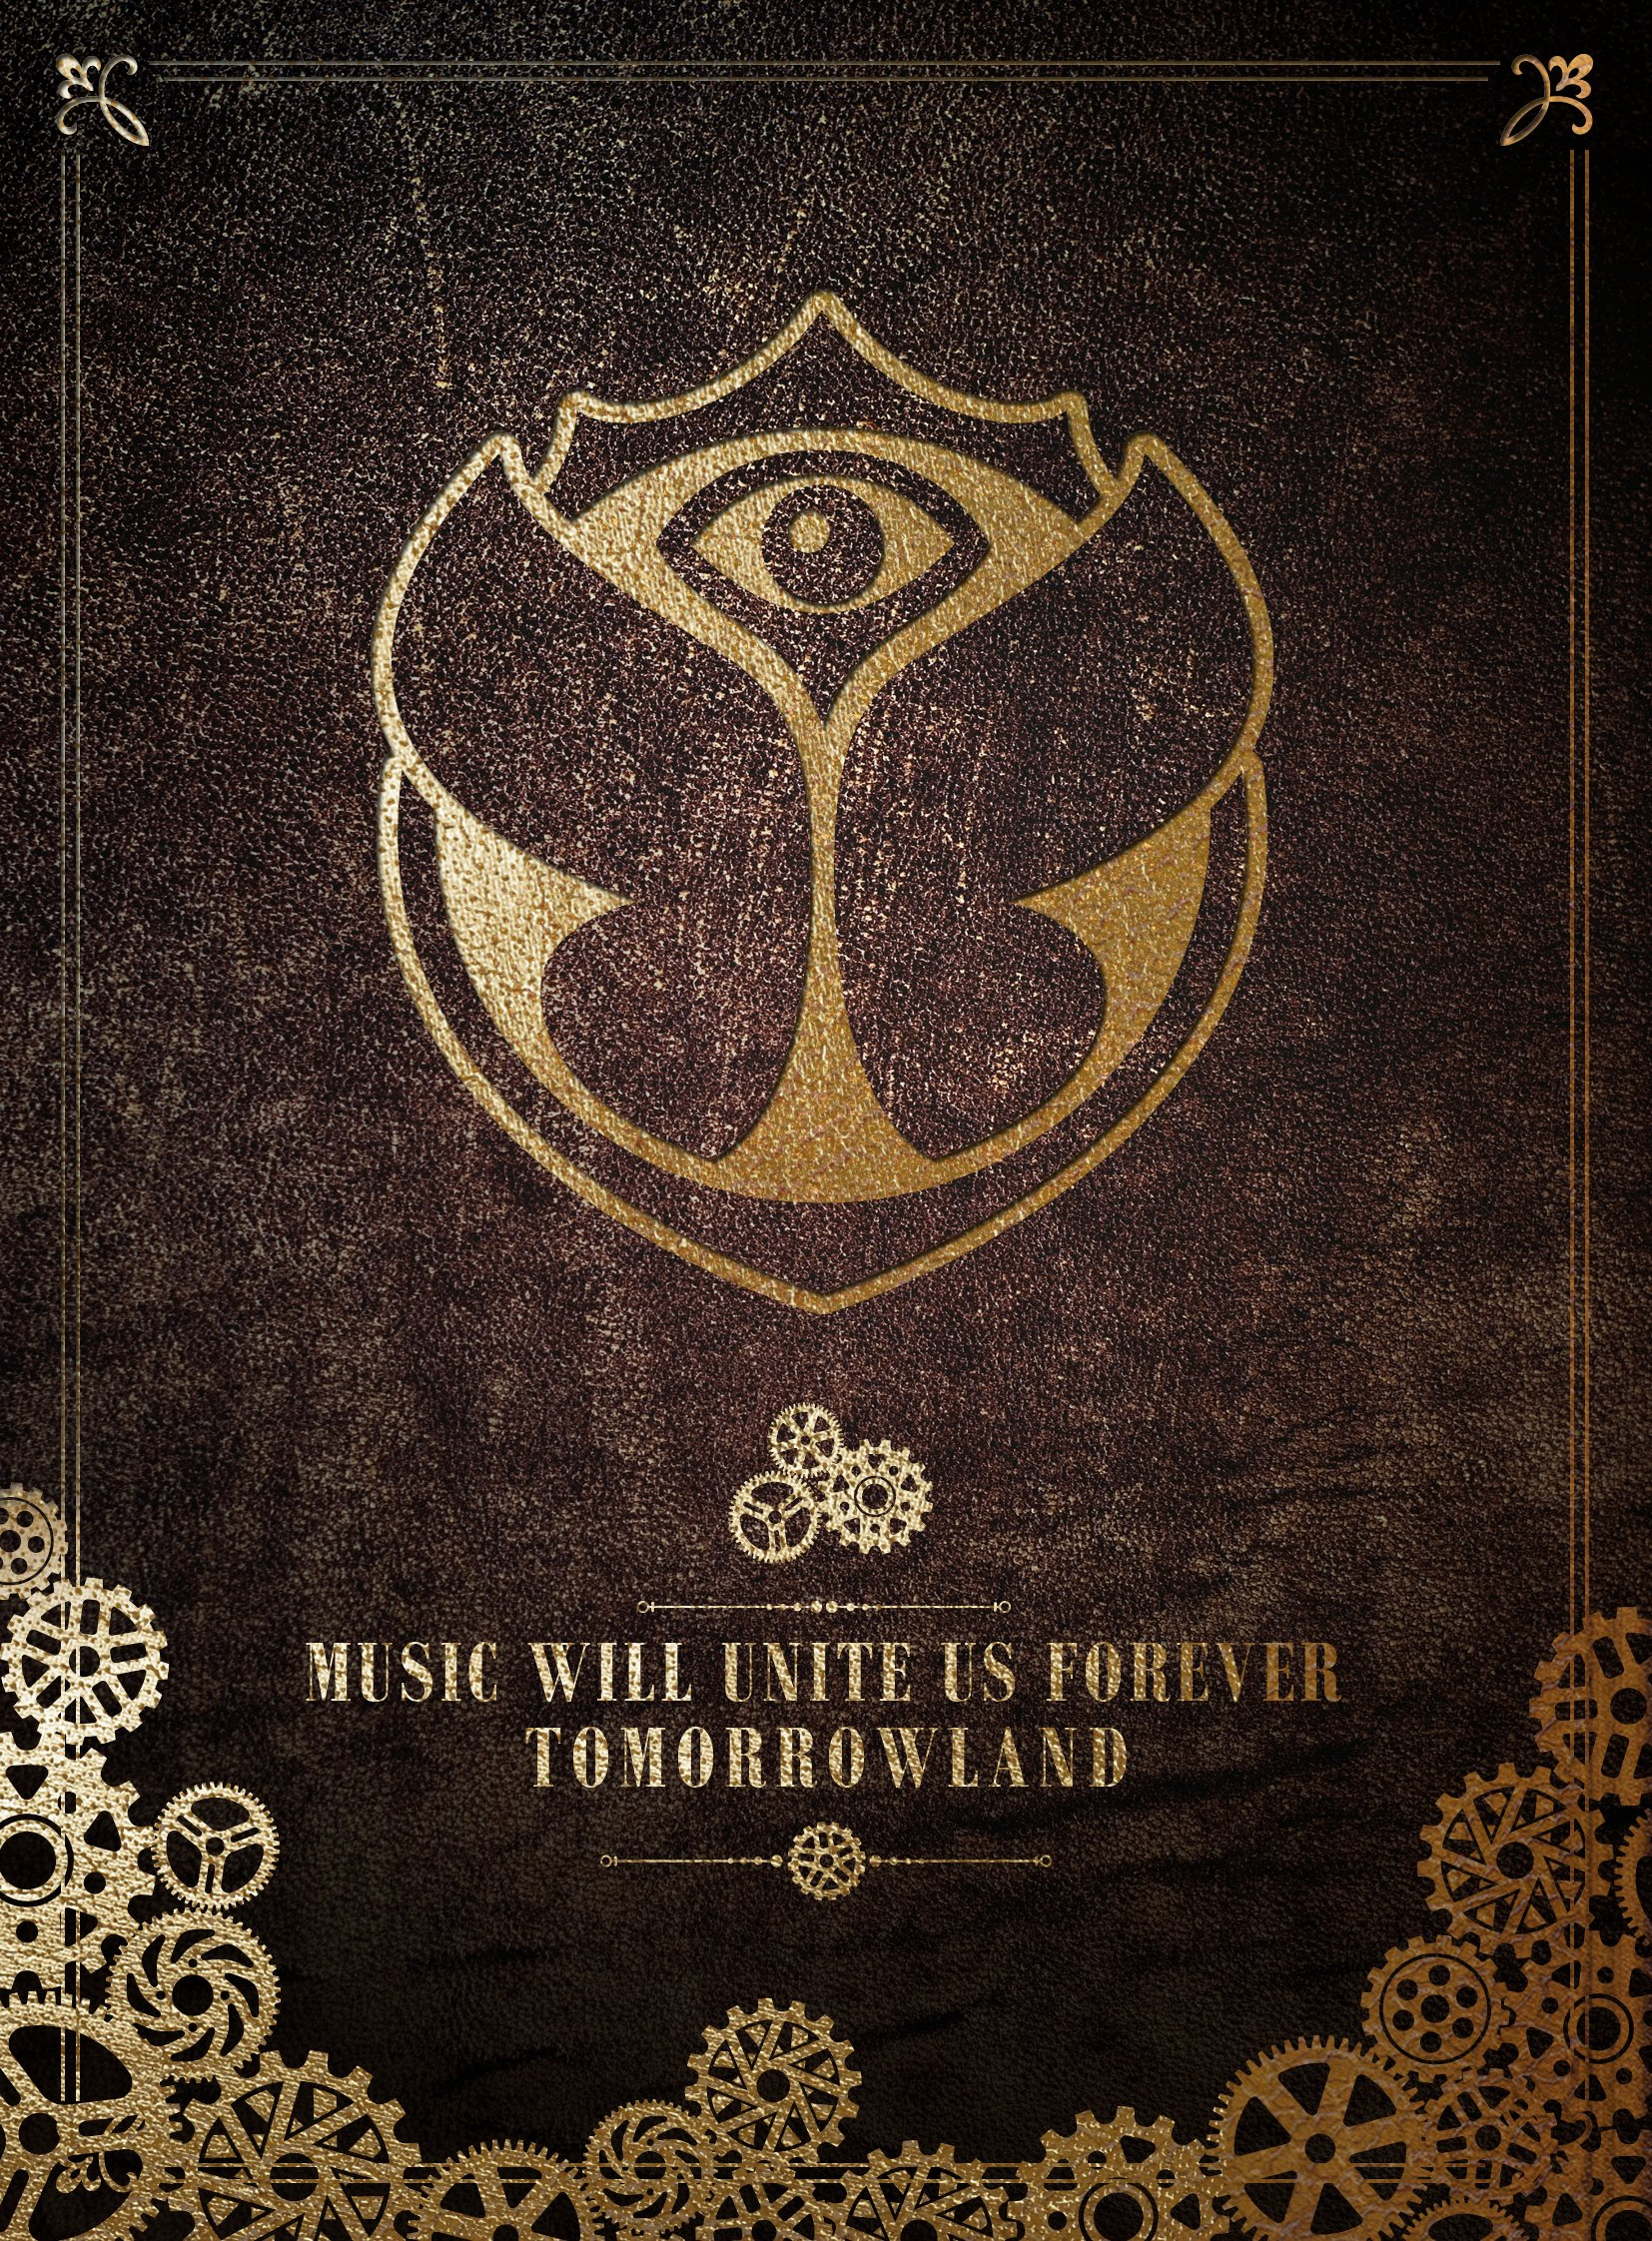 VA-Tomorrowland Music Will Unite Us Forever 2014-3CD-FLAC-2014-NBCFLAC Download